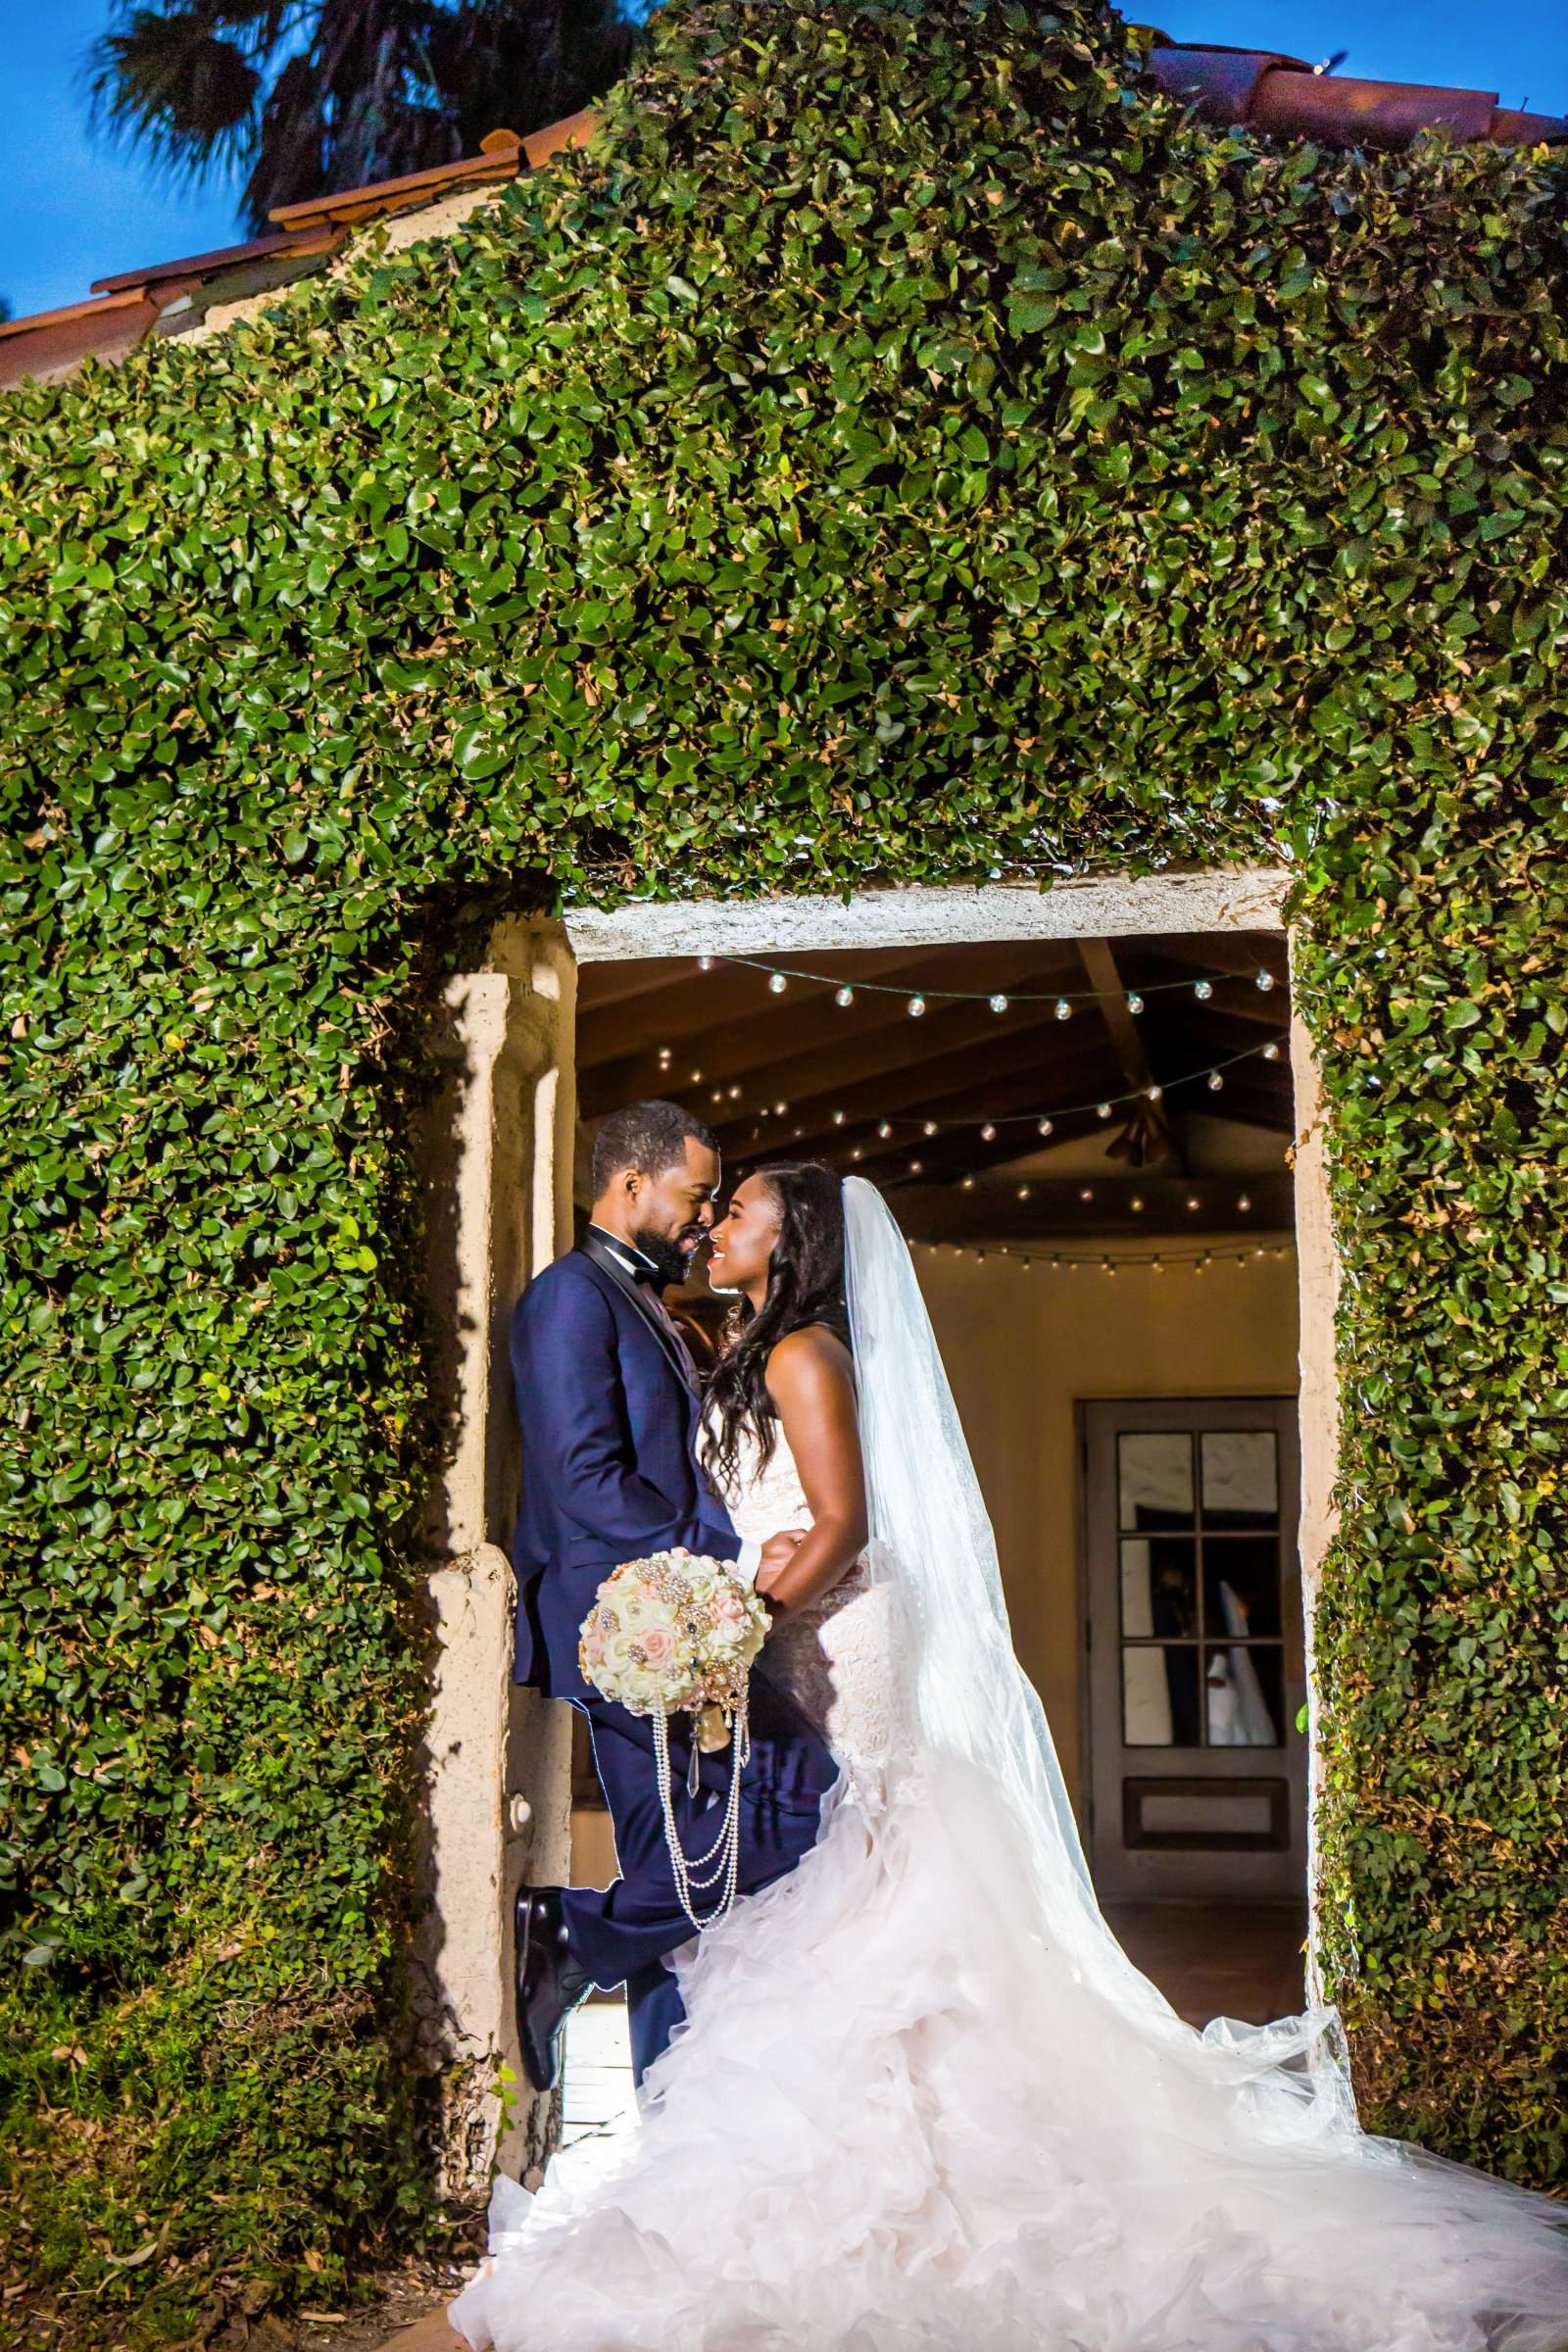 64ac3e0ccac African American Wedding | San Diego Photographer - True Photography